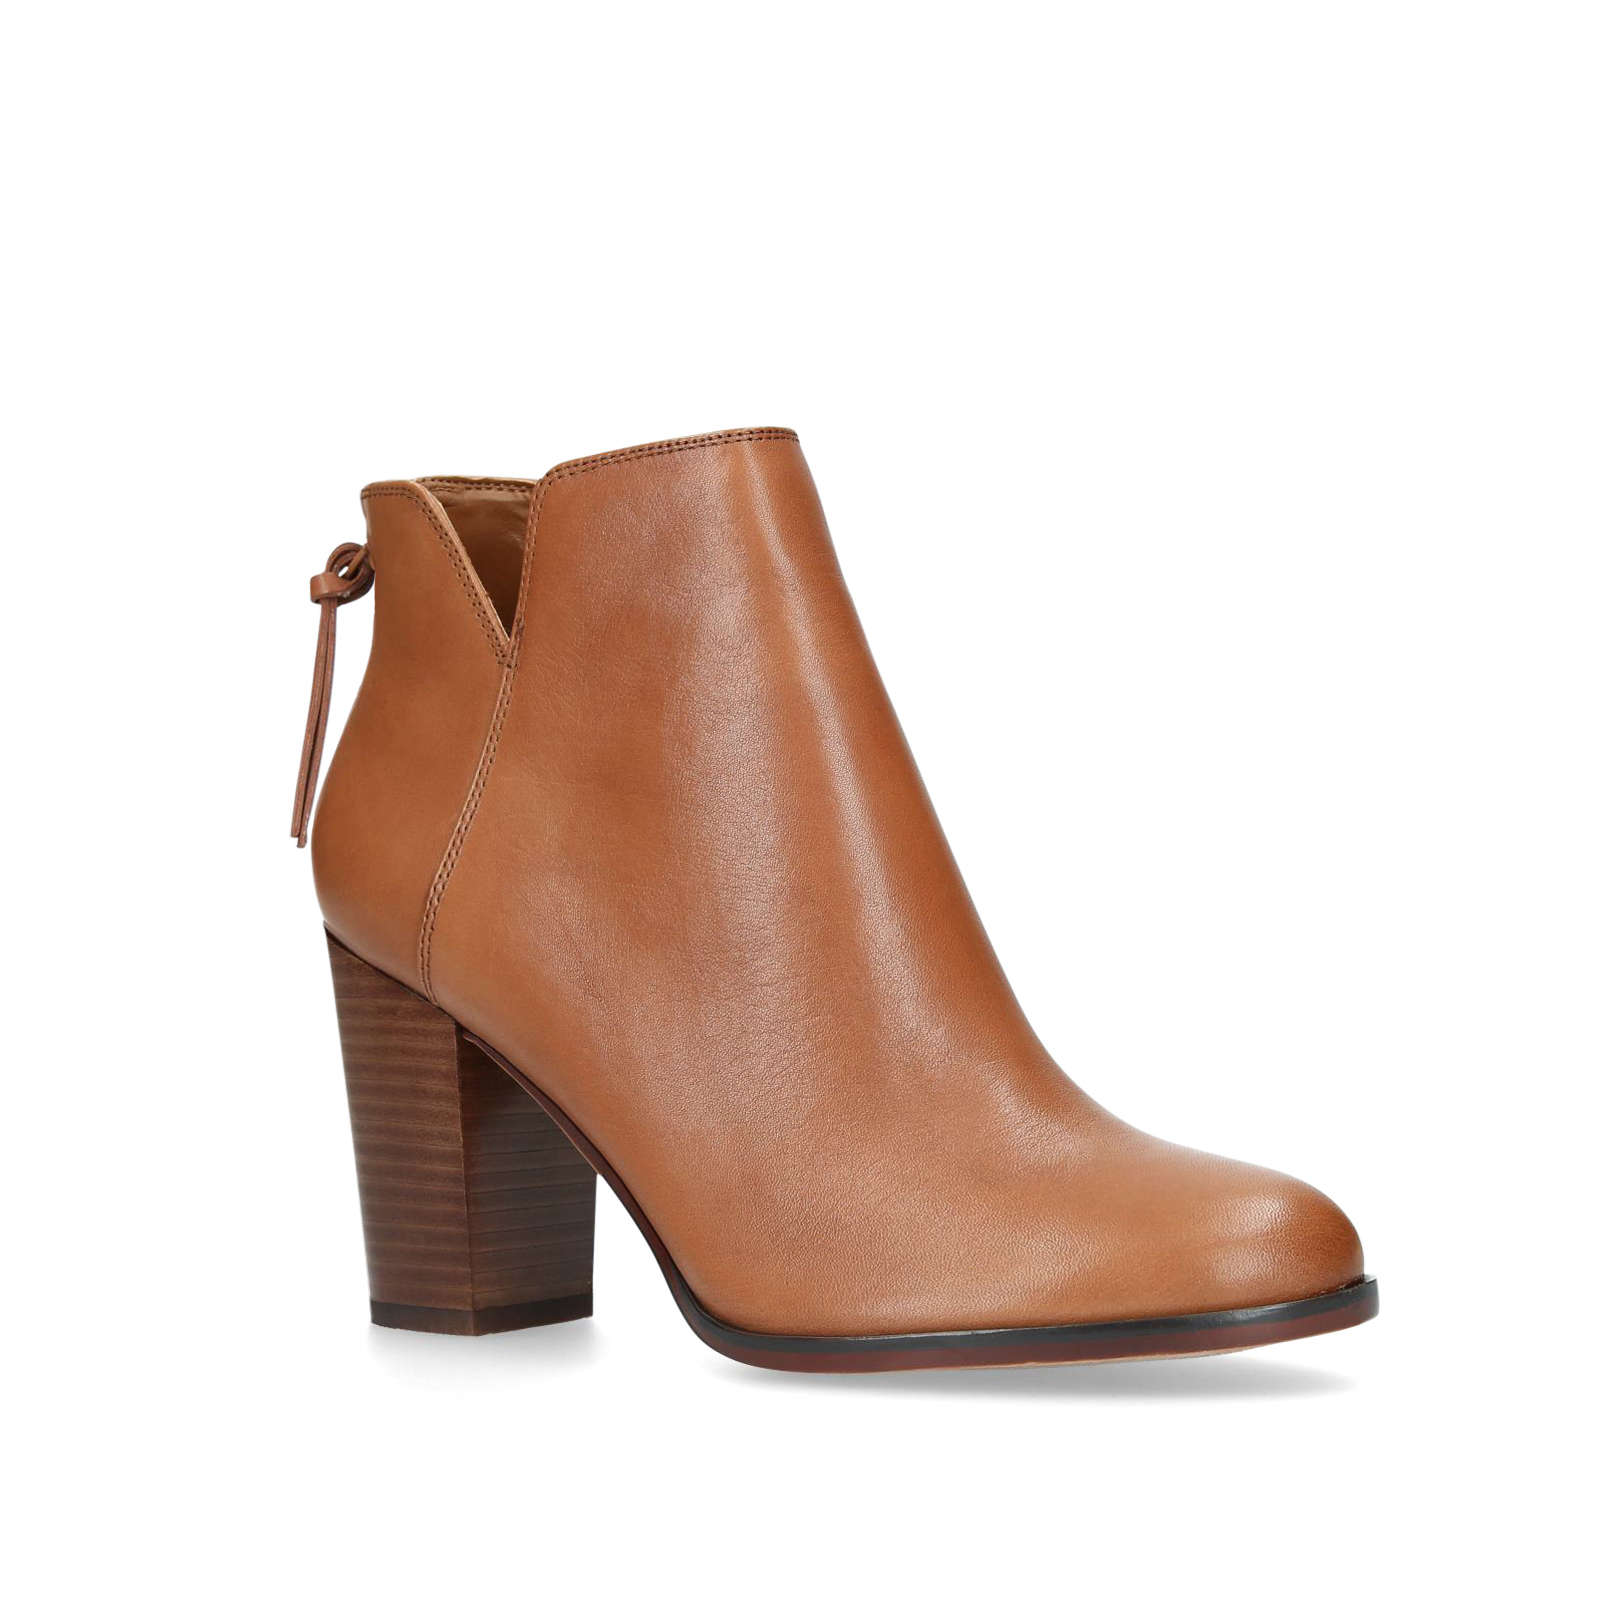 LALITH - ALDO Ankle Boots